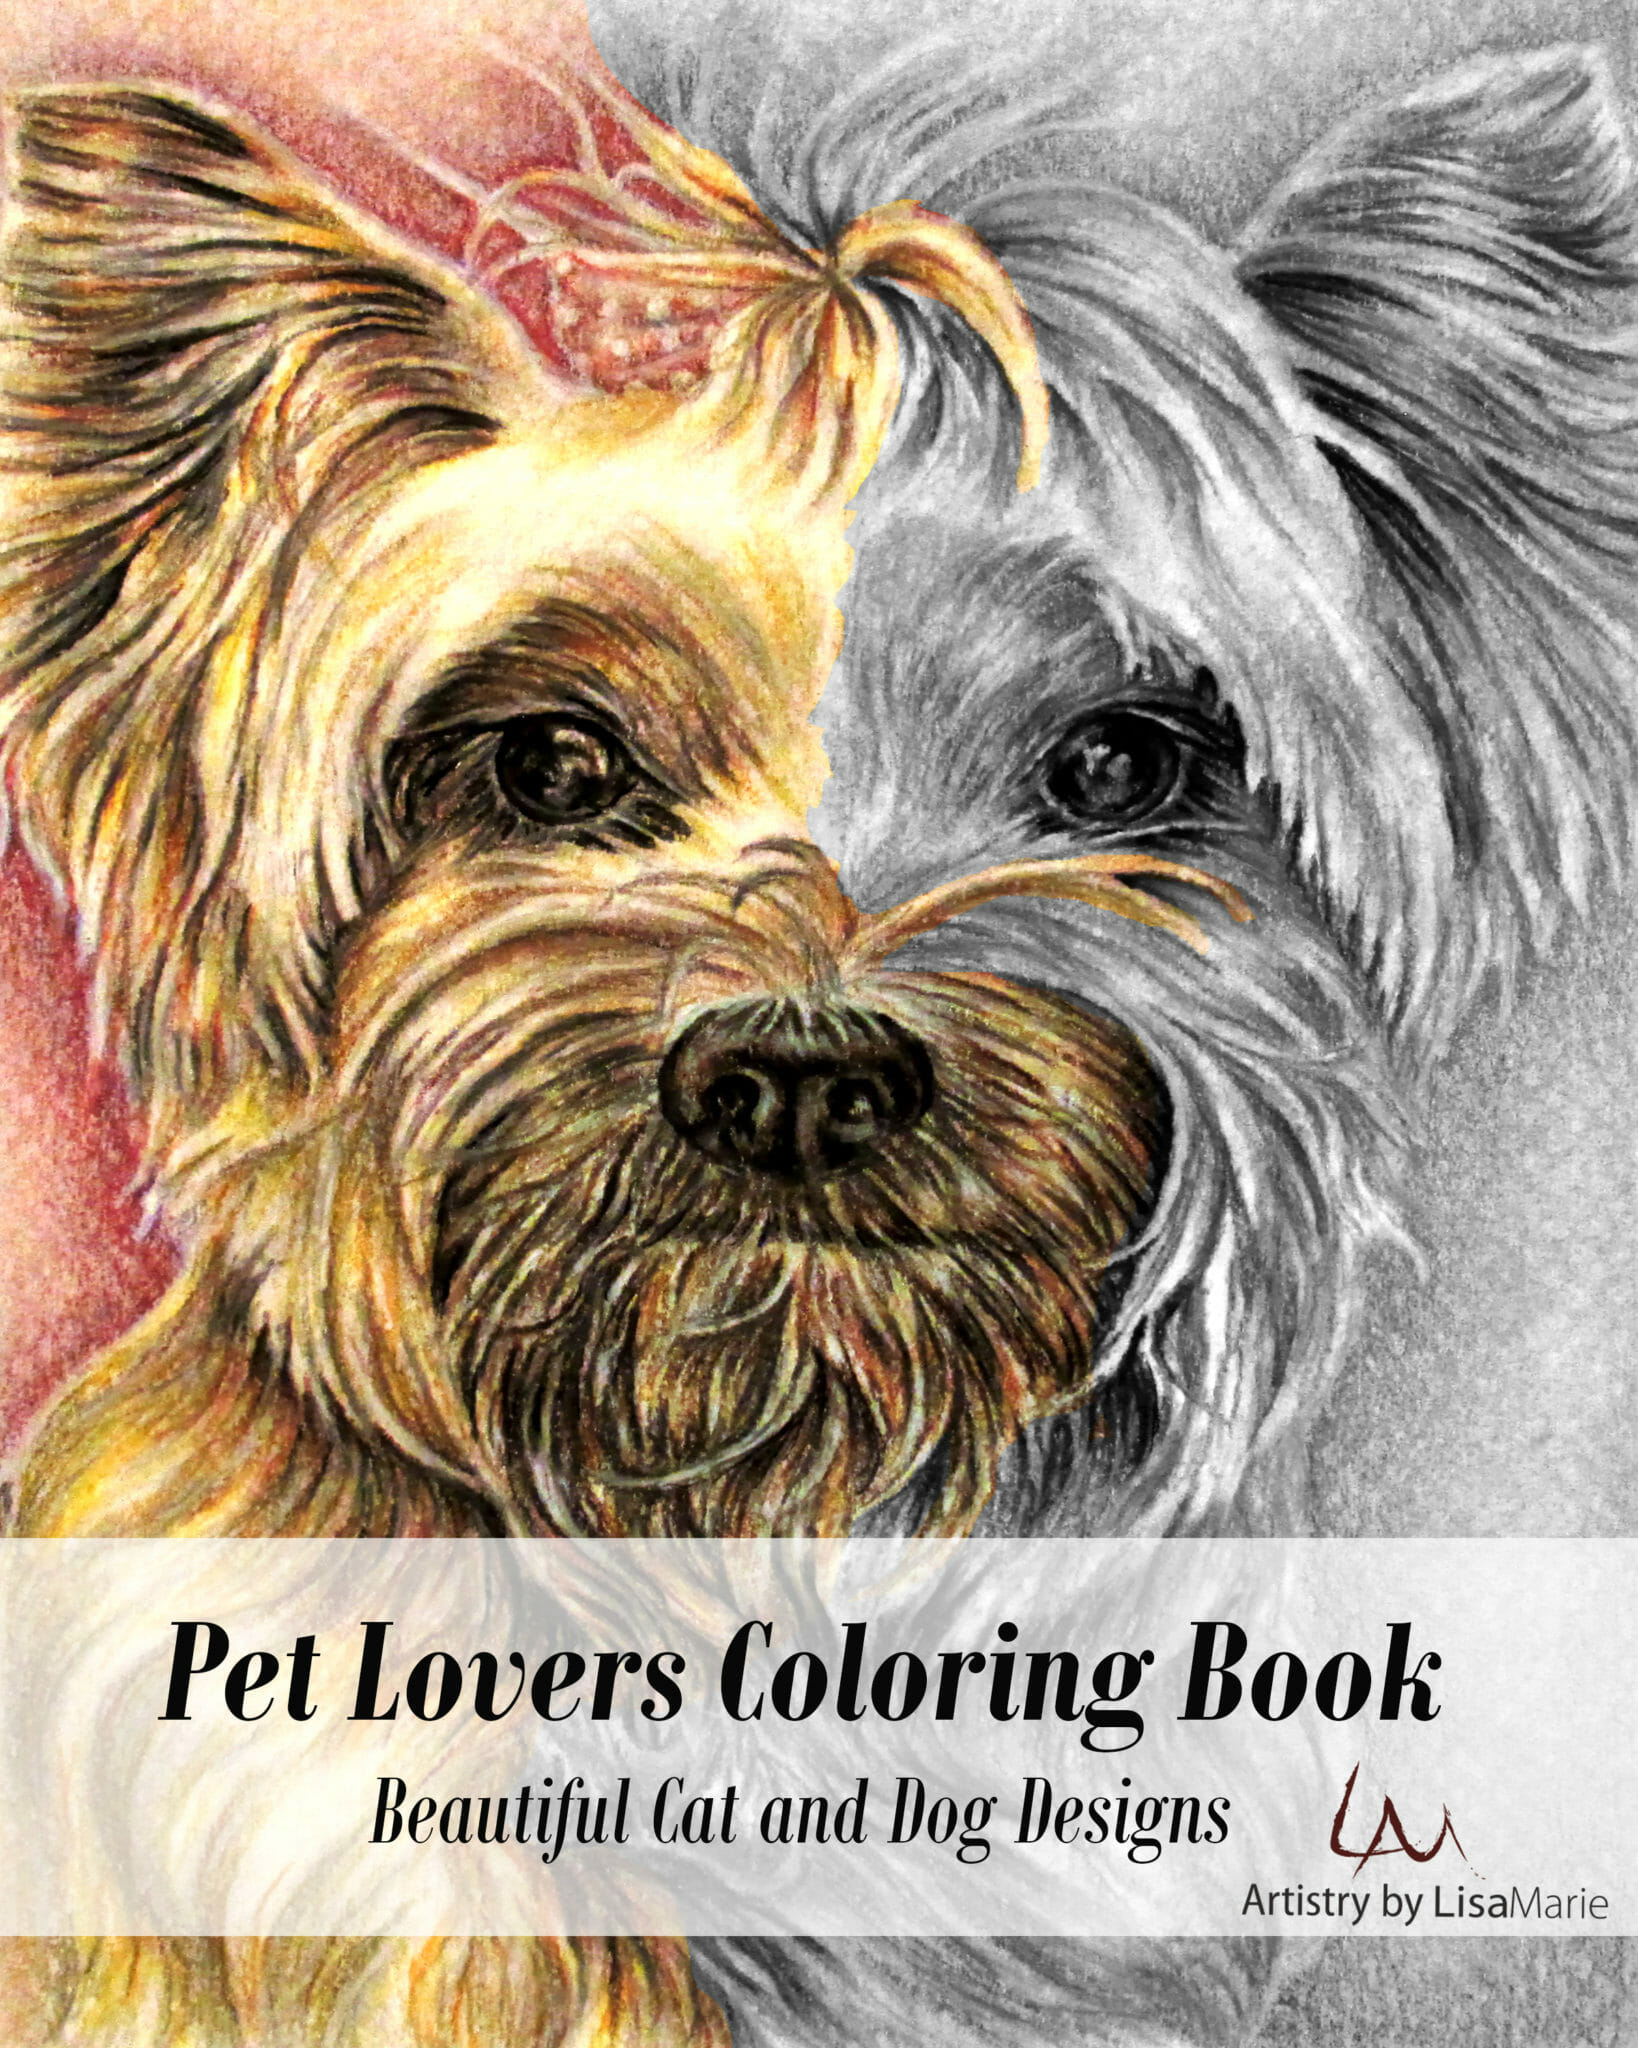 Pet Lovers Coloring Book All Hand Drawn Grayscale Art Tabbycatsitting 8x10 Oncrafttable Terrier